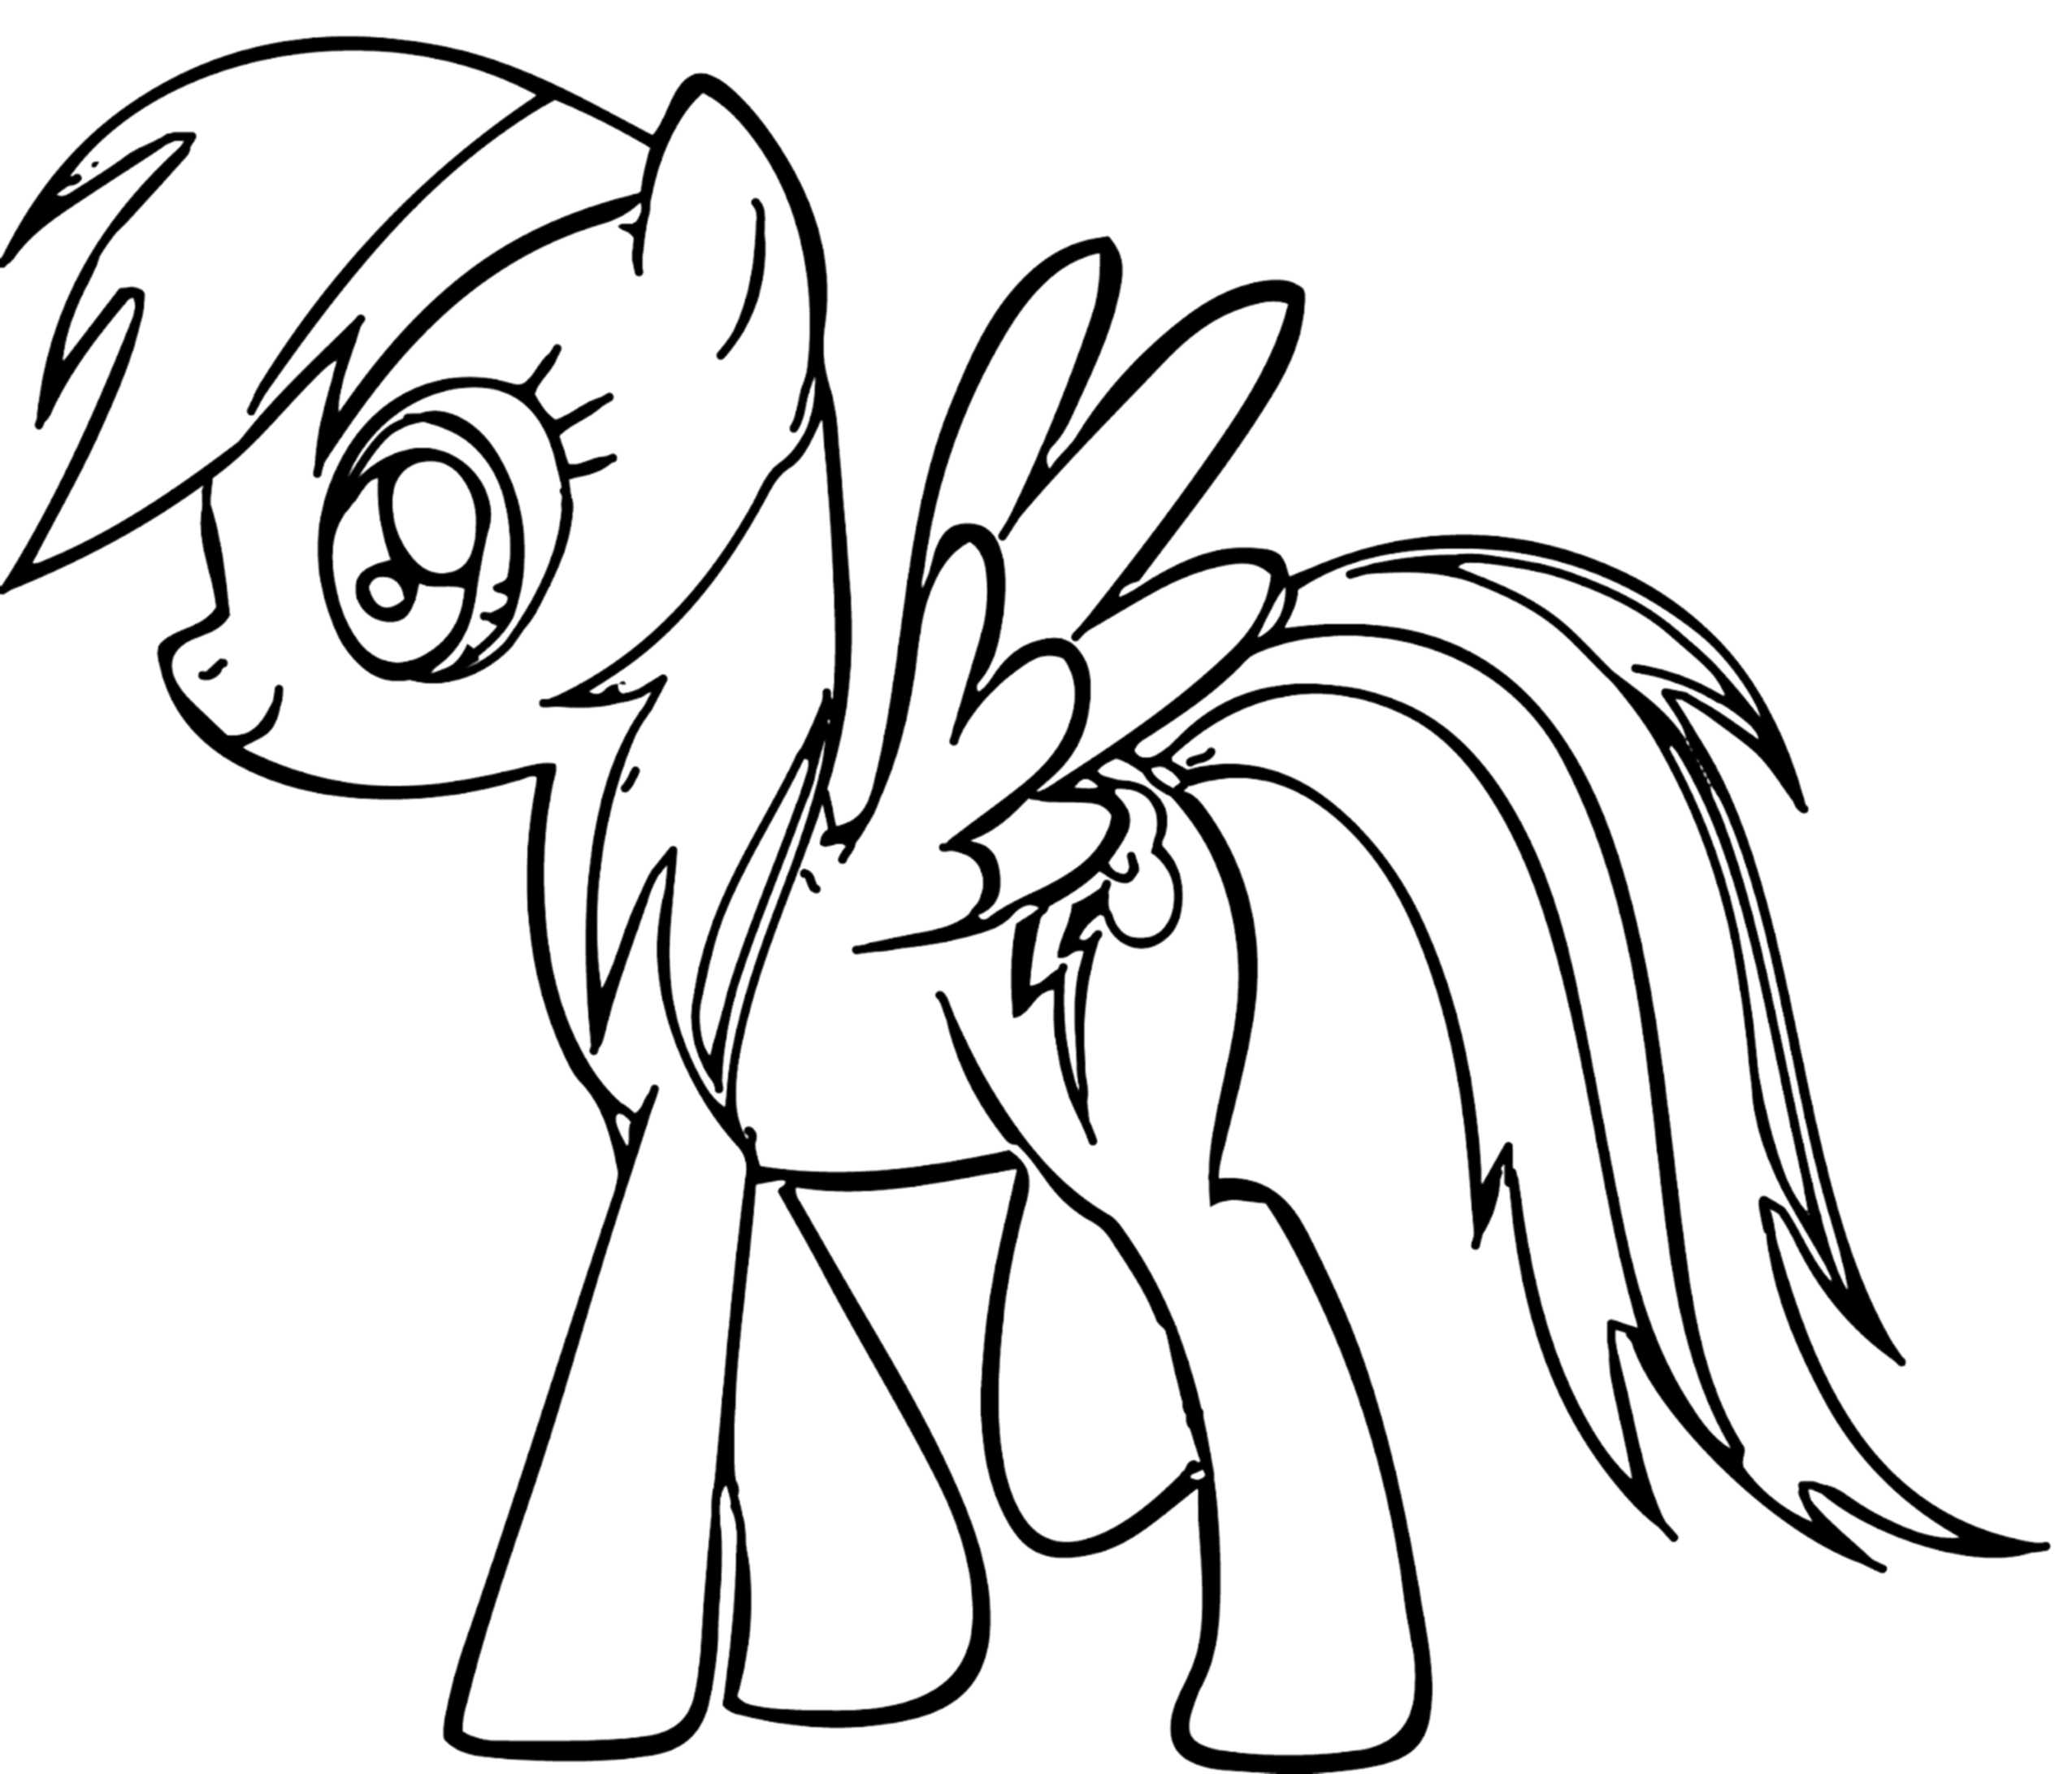 Rainbow dash coloring pages best coloring pages for kids for Coloring page book